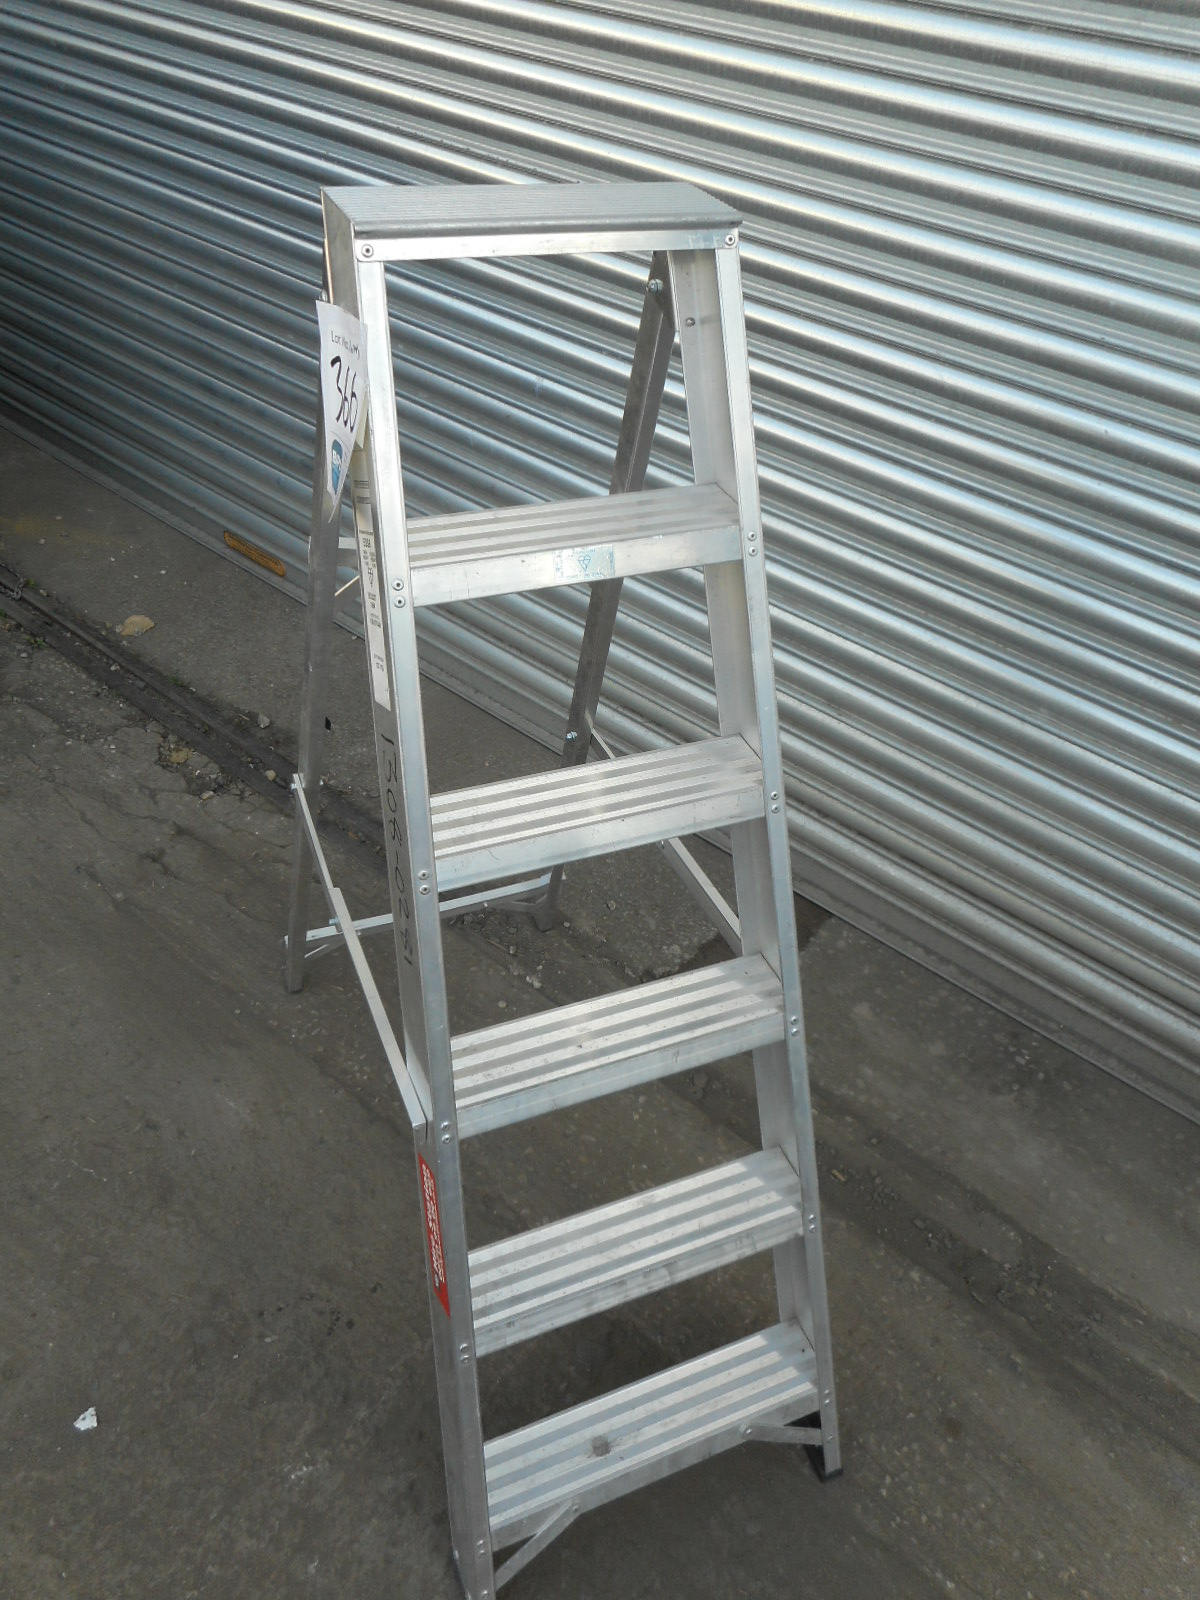 UNKNOWN UNKNOWN {035135} ALLOY SWING-BACK STEP LADDER - 6 ...